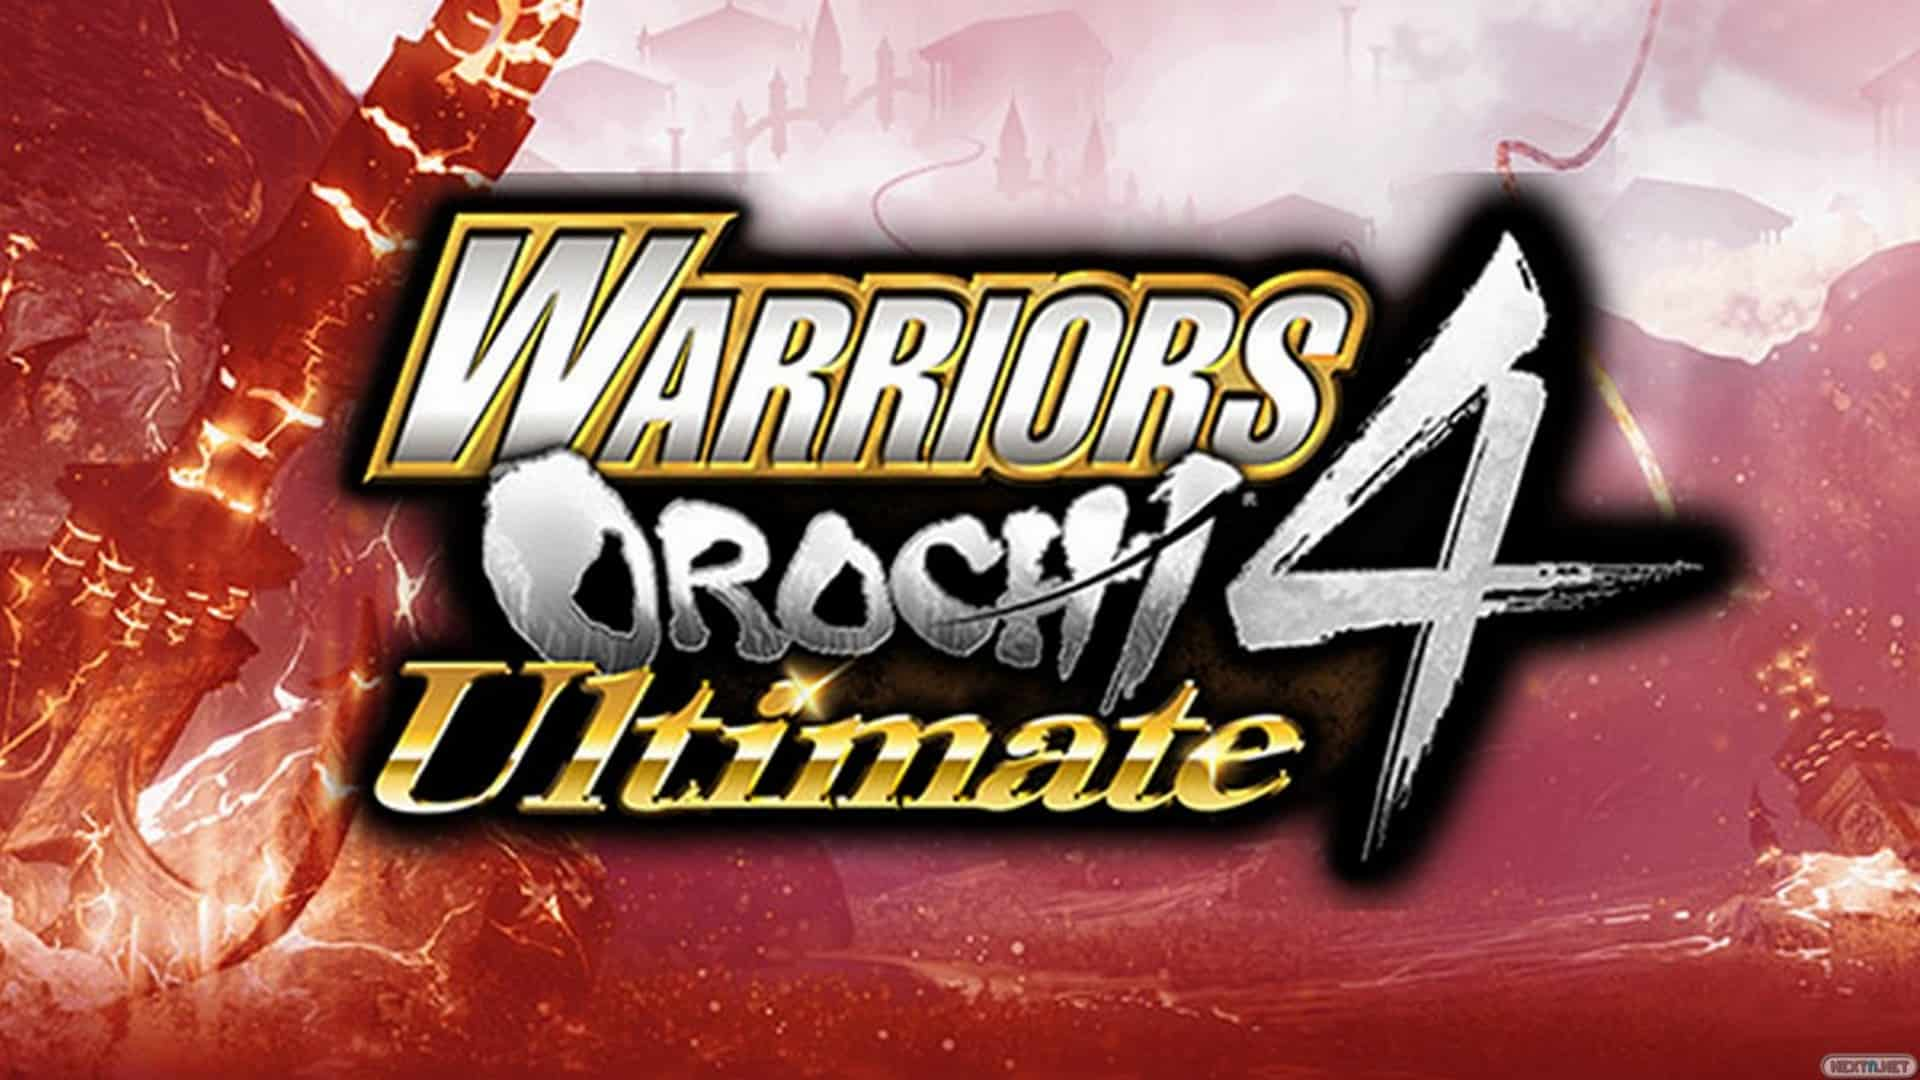 New Characters, New Storylines & A New True Ending Highlight Additions In Warriors Orochi 4 Ultimate